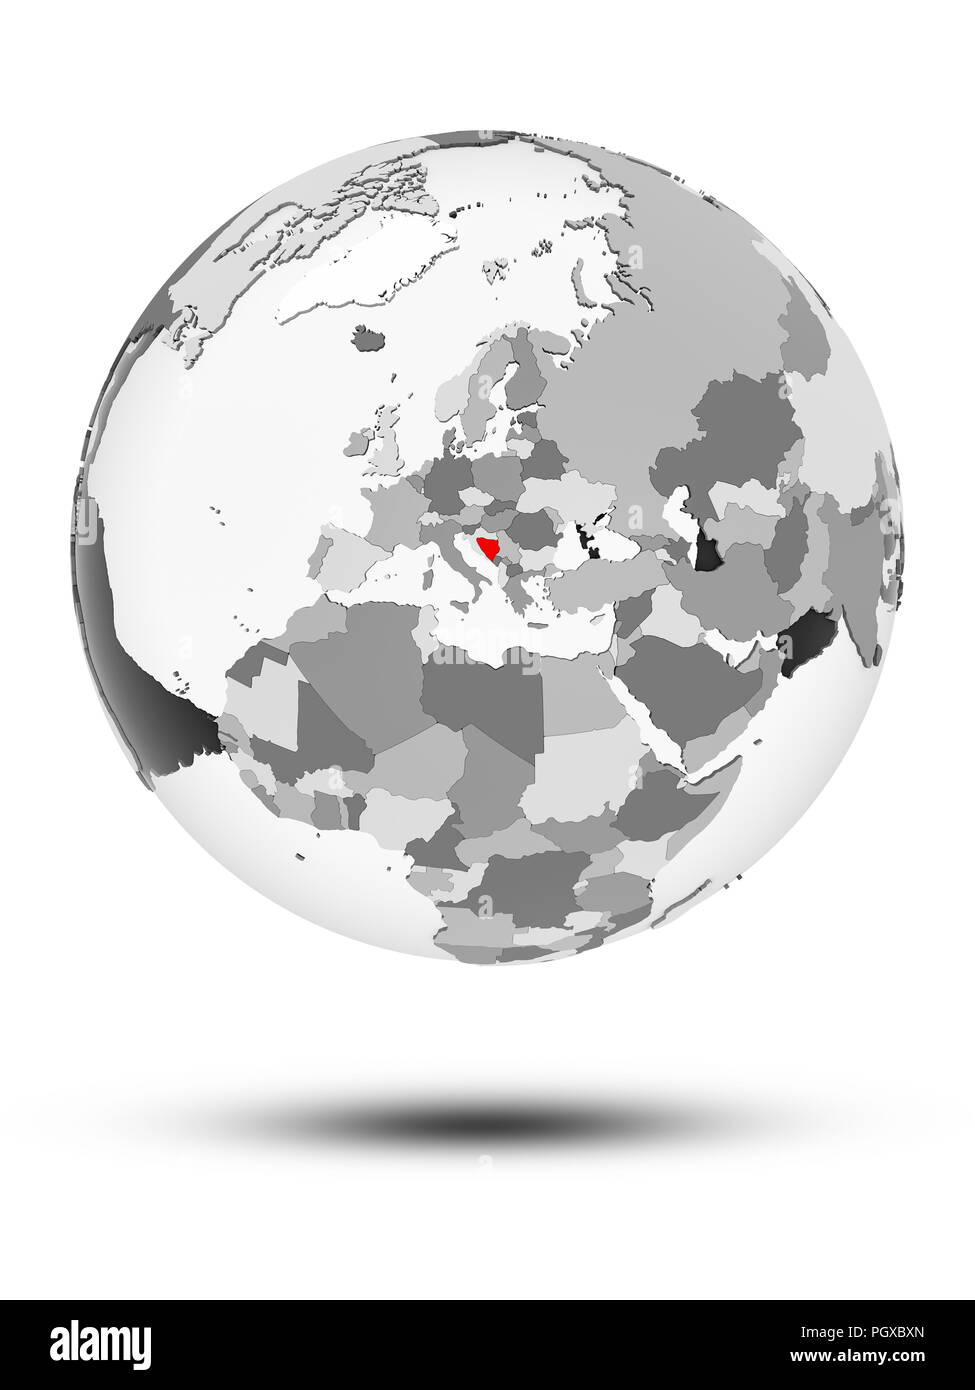 Bosnia and Herzegovina on globe with translucent oceans isolated on white background. 3D illustration. - Stock Image